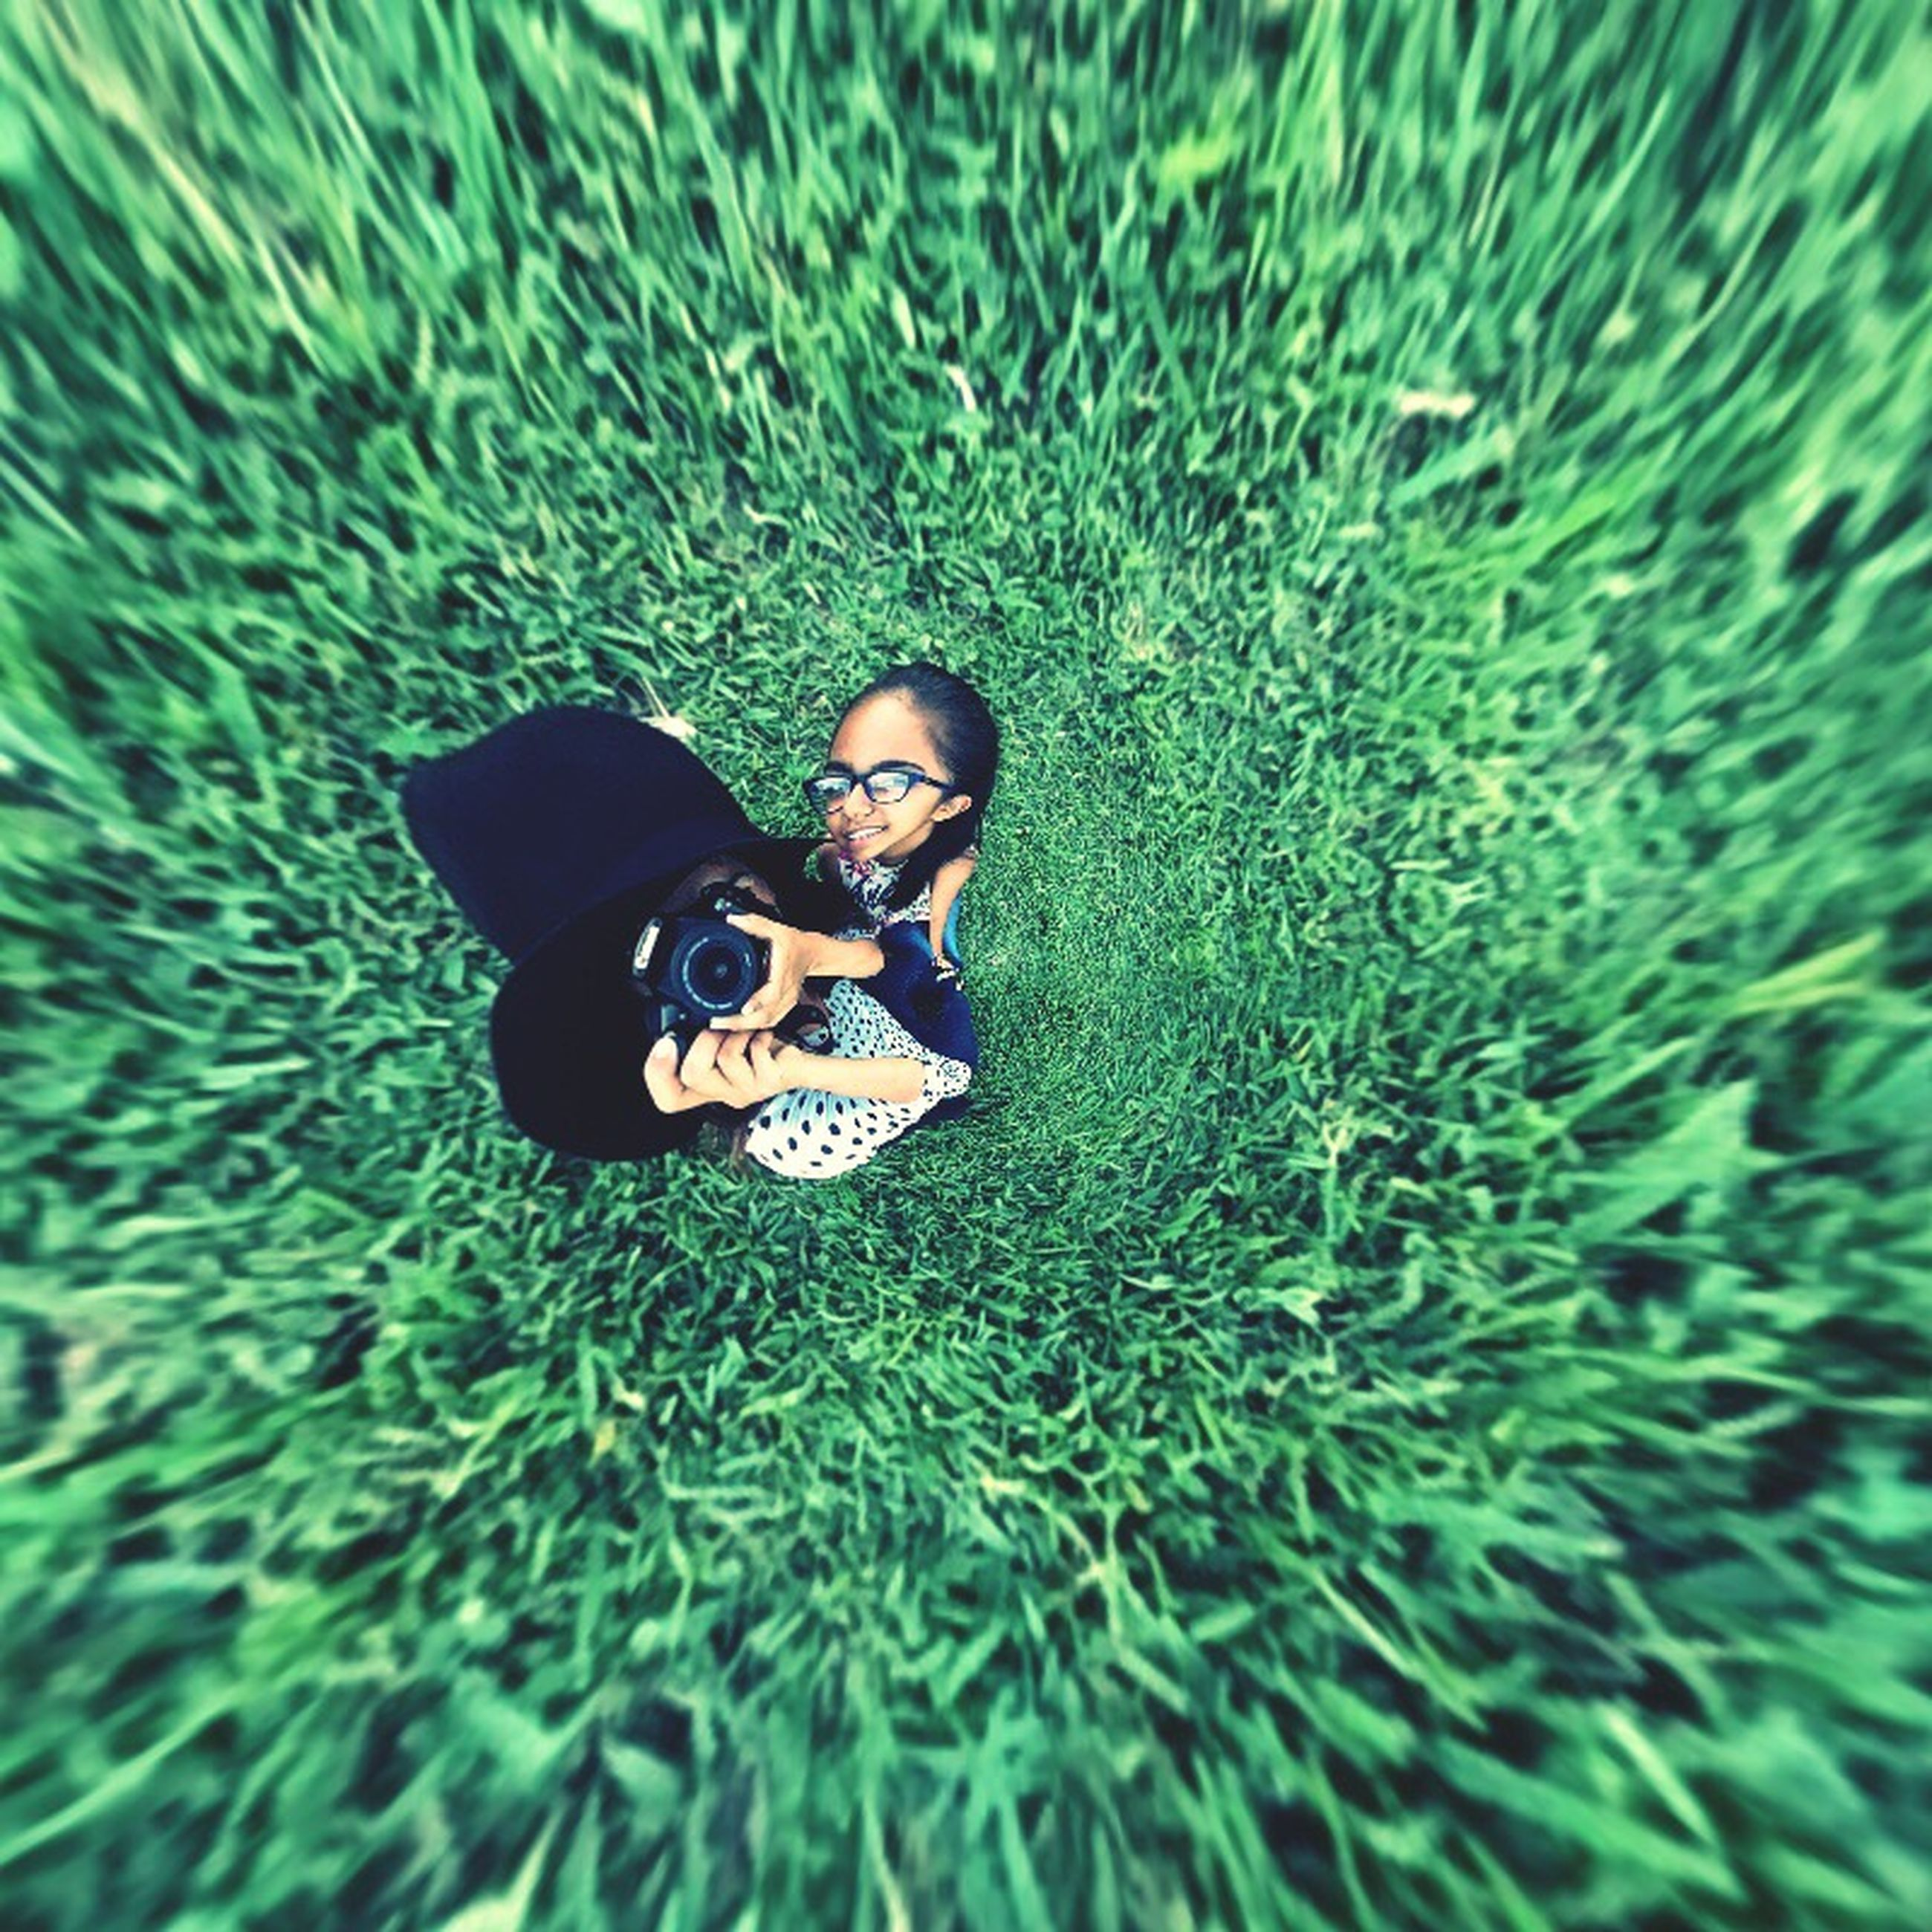 lifestyles, leisure activity, high angle view, shoe, grass, sunglasses, photography themes, green color, technology, field, casual clothing, photographing, men, toy, day, front view, camera - photographic equipment, childhood